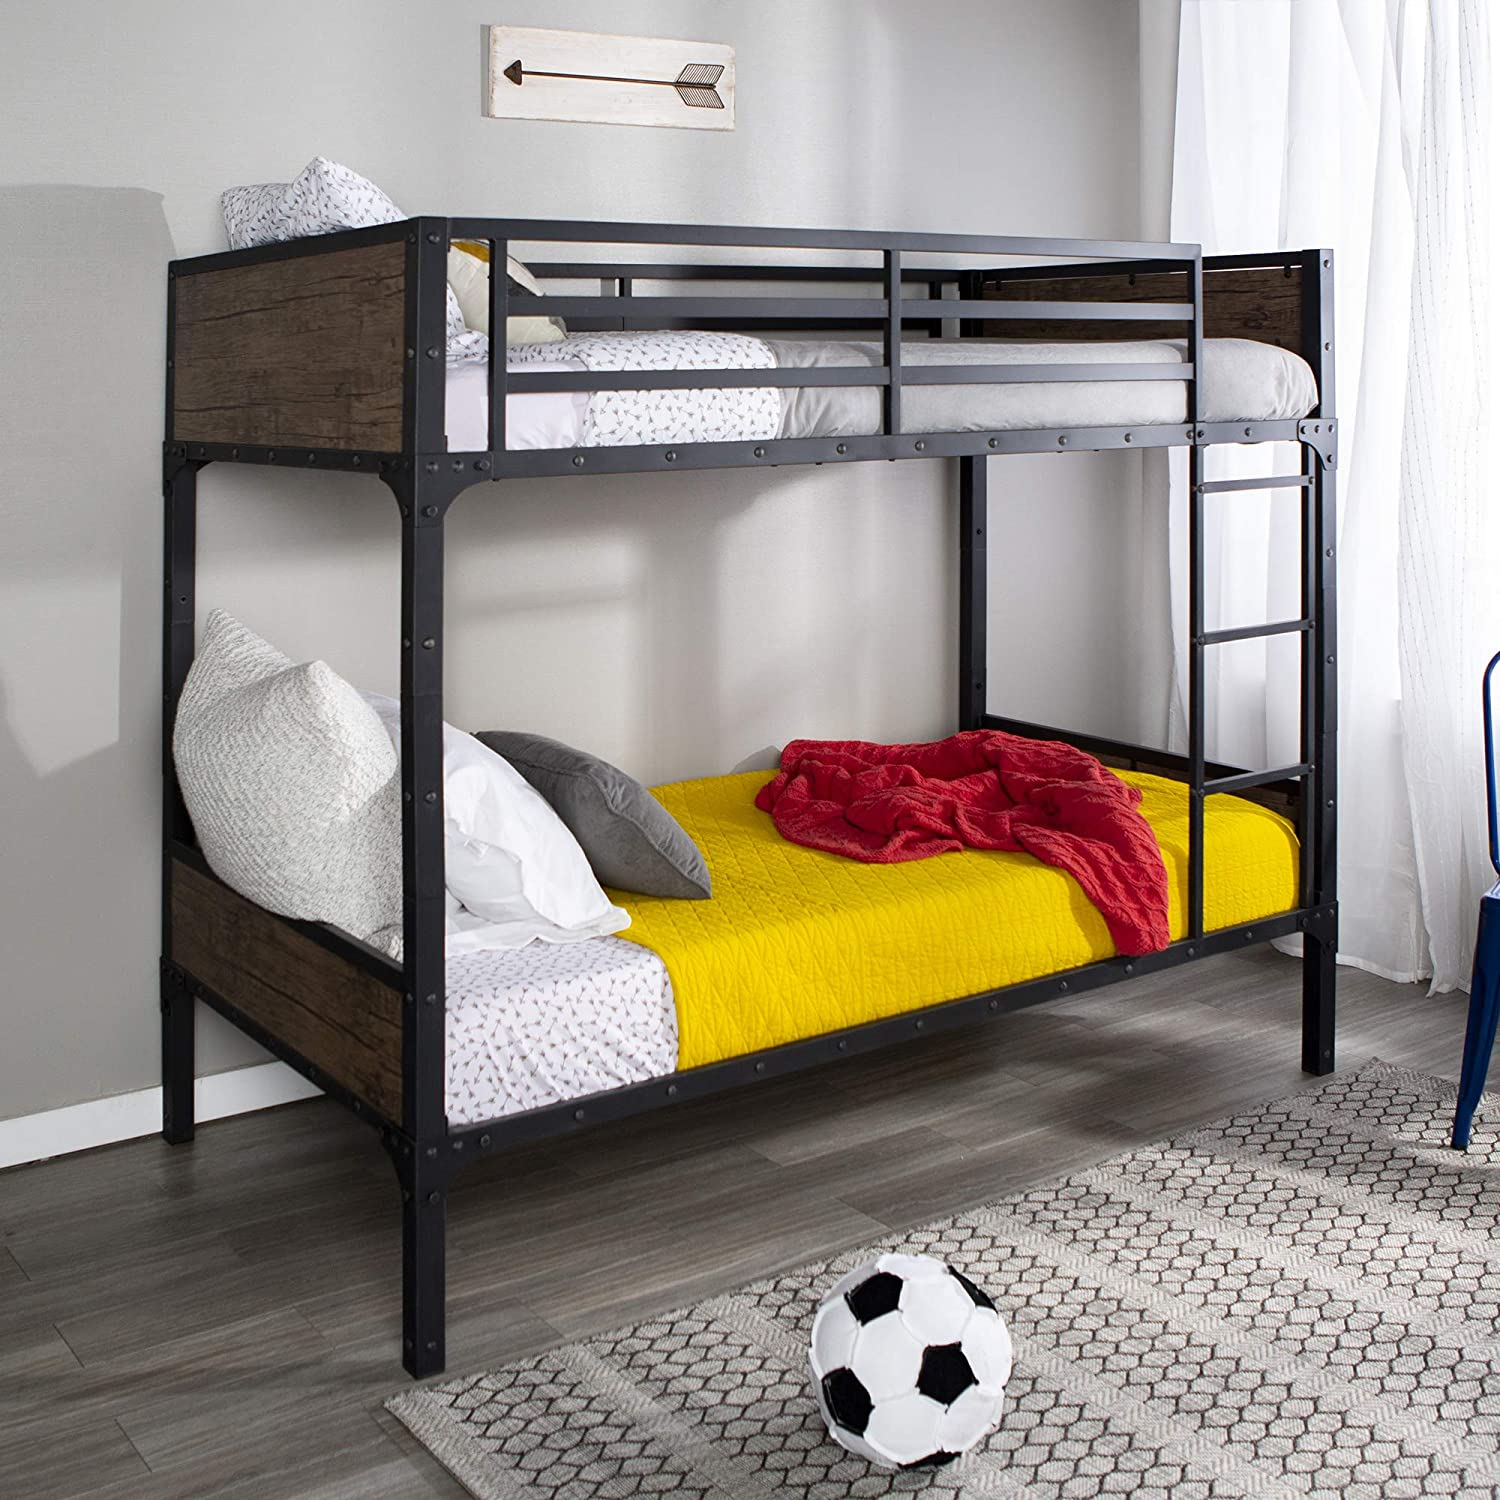 WE Furniture Rustic Wood and Metal Twin Space-Saving Bunk Bed with Ladder